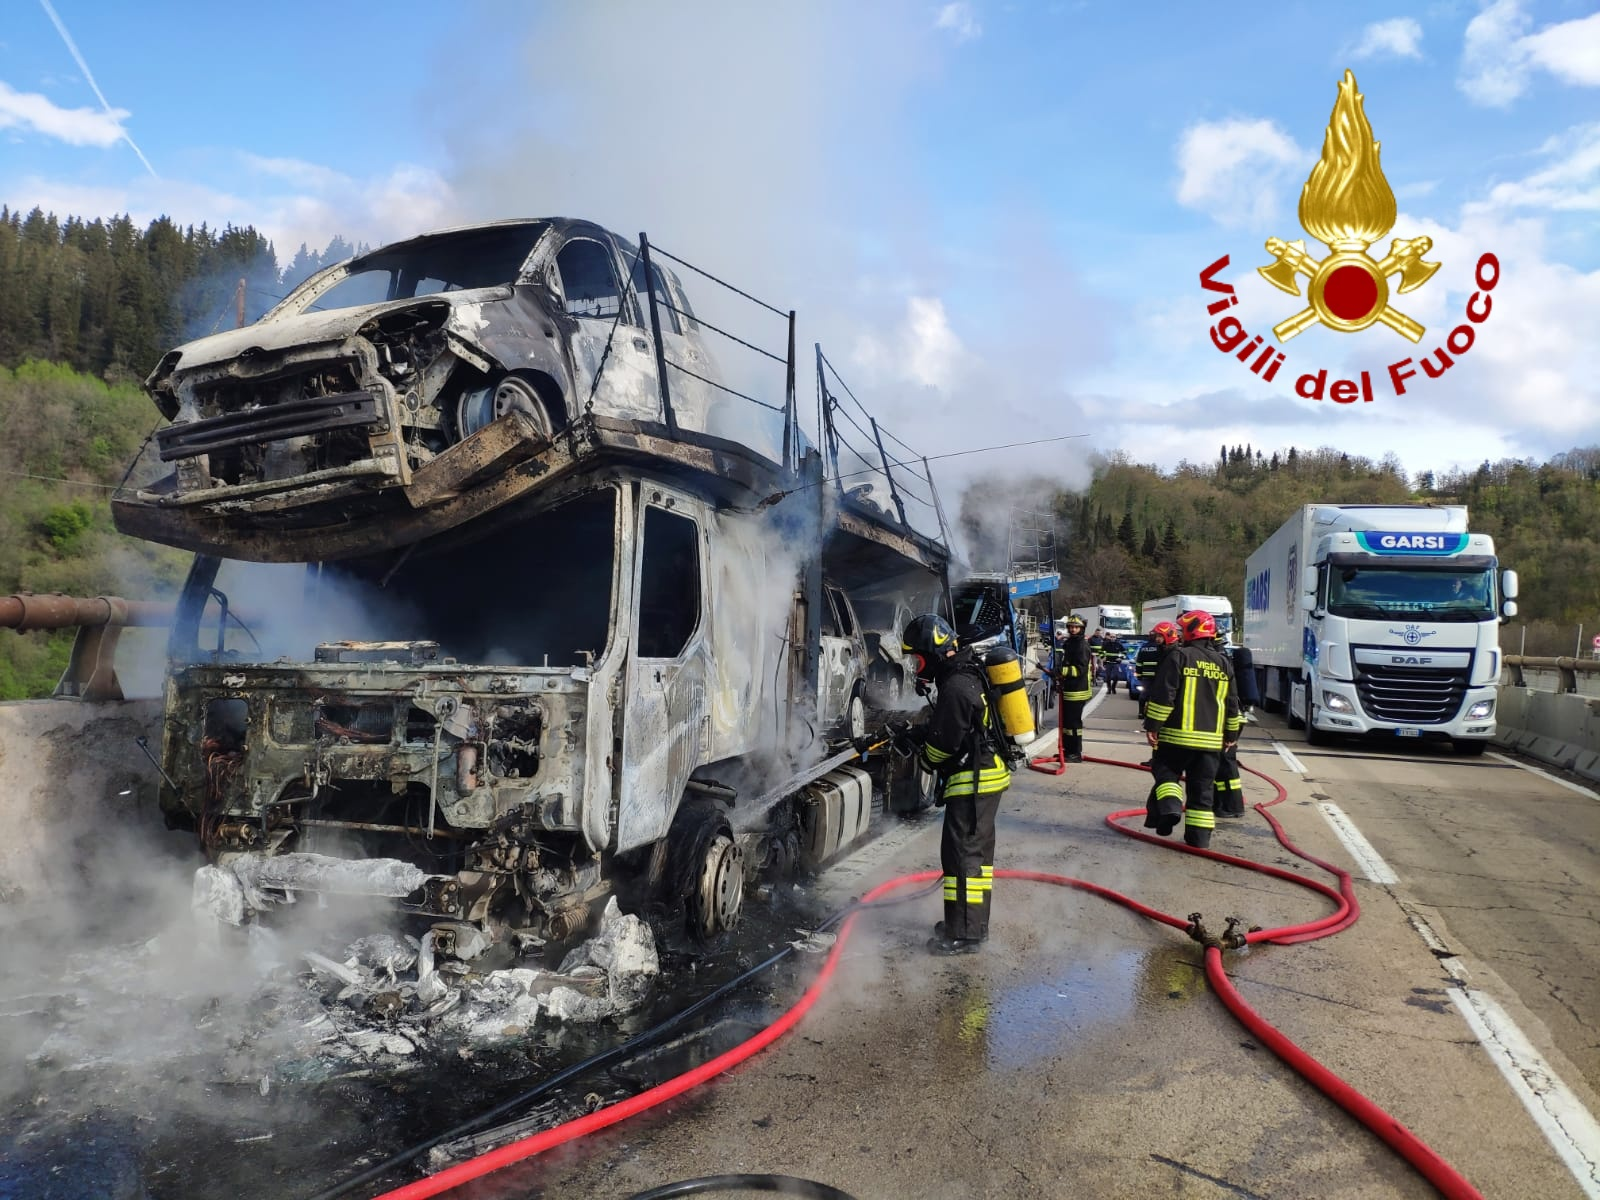 Bisarca a fuoco in A1, autostrada in tilt